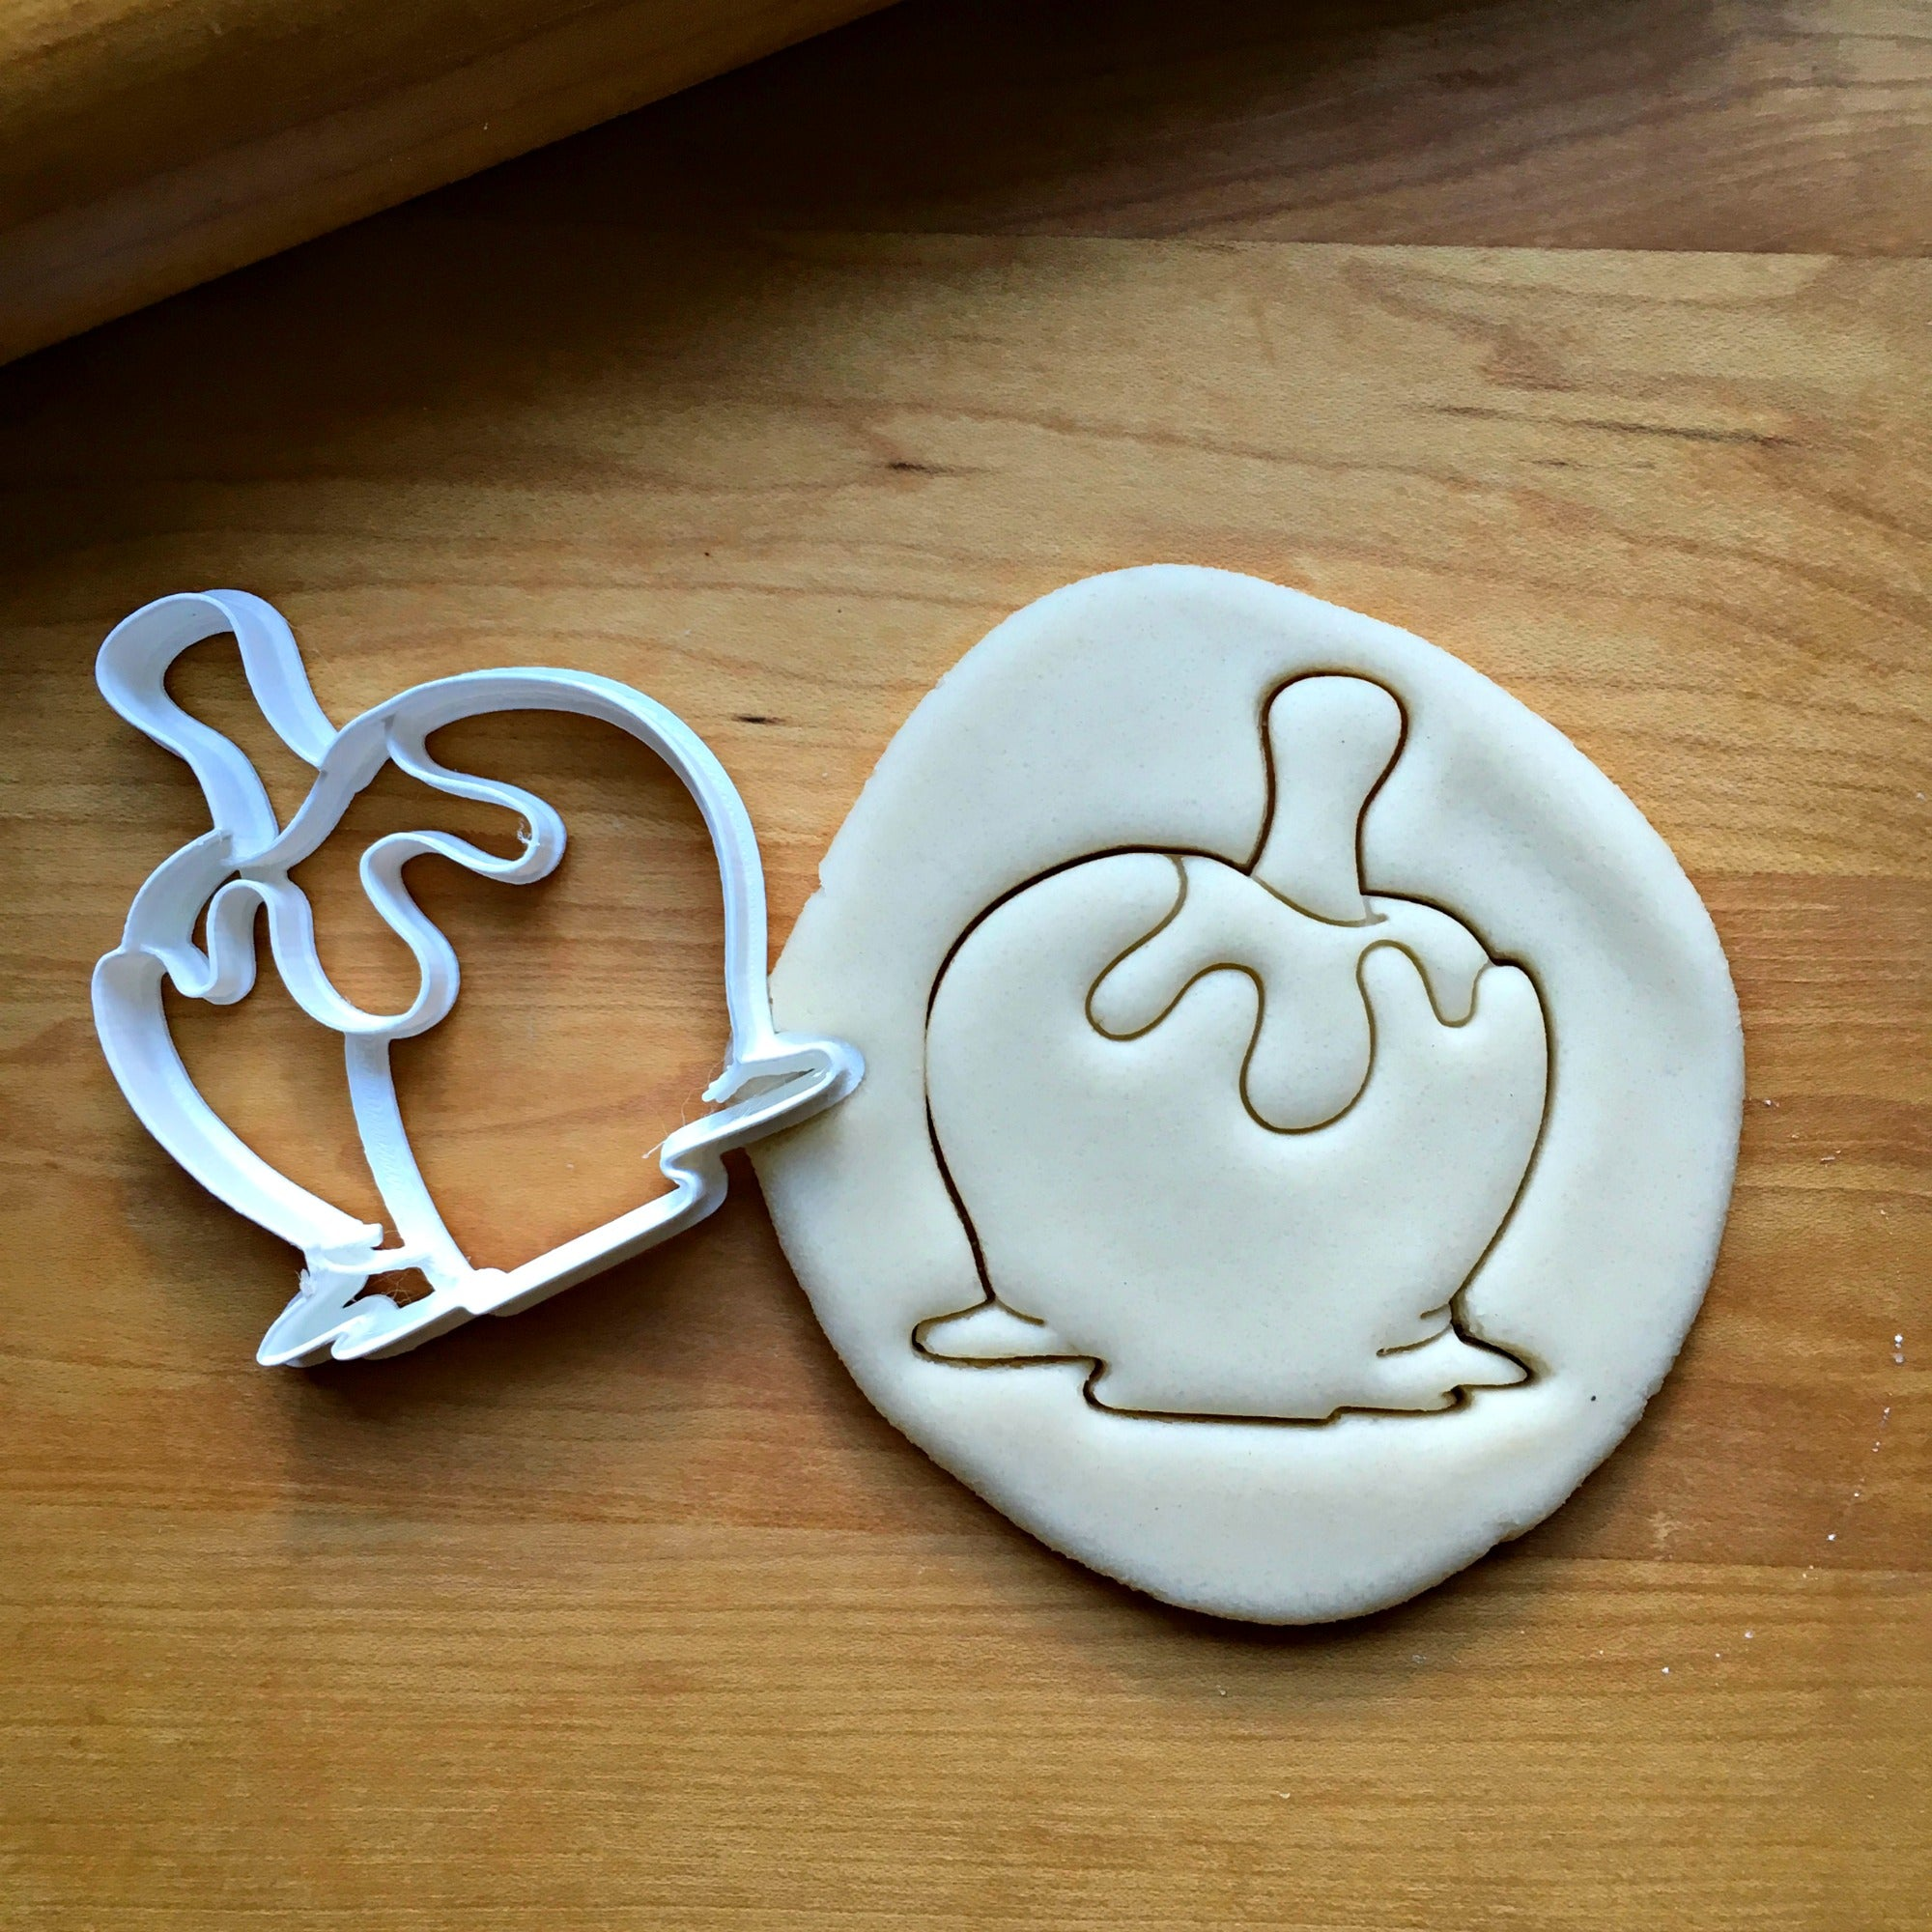 Caramel Apple Cookie Cutter/Dishwasher Safe